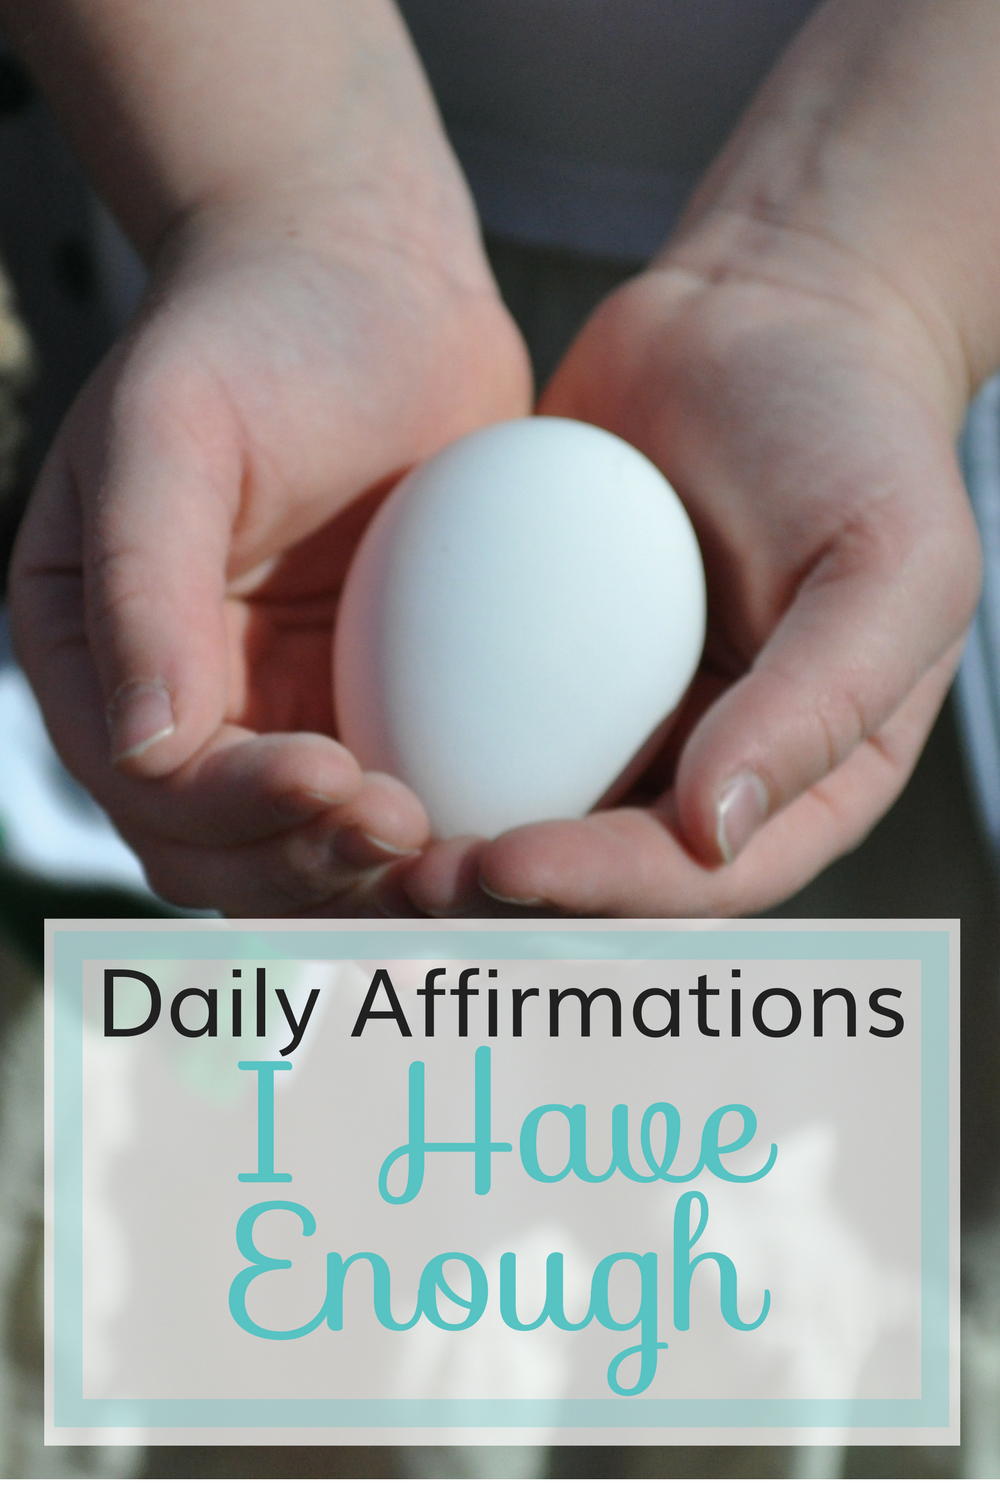 Daily Affirmations: I Have Enough. I believe this an affirmation we need to repeat to ourselves frequently to combat greed, selfishness, pride, and dissatisfaction in our lives.